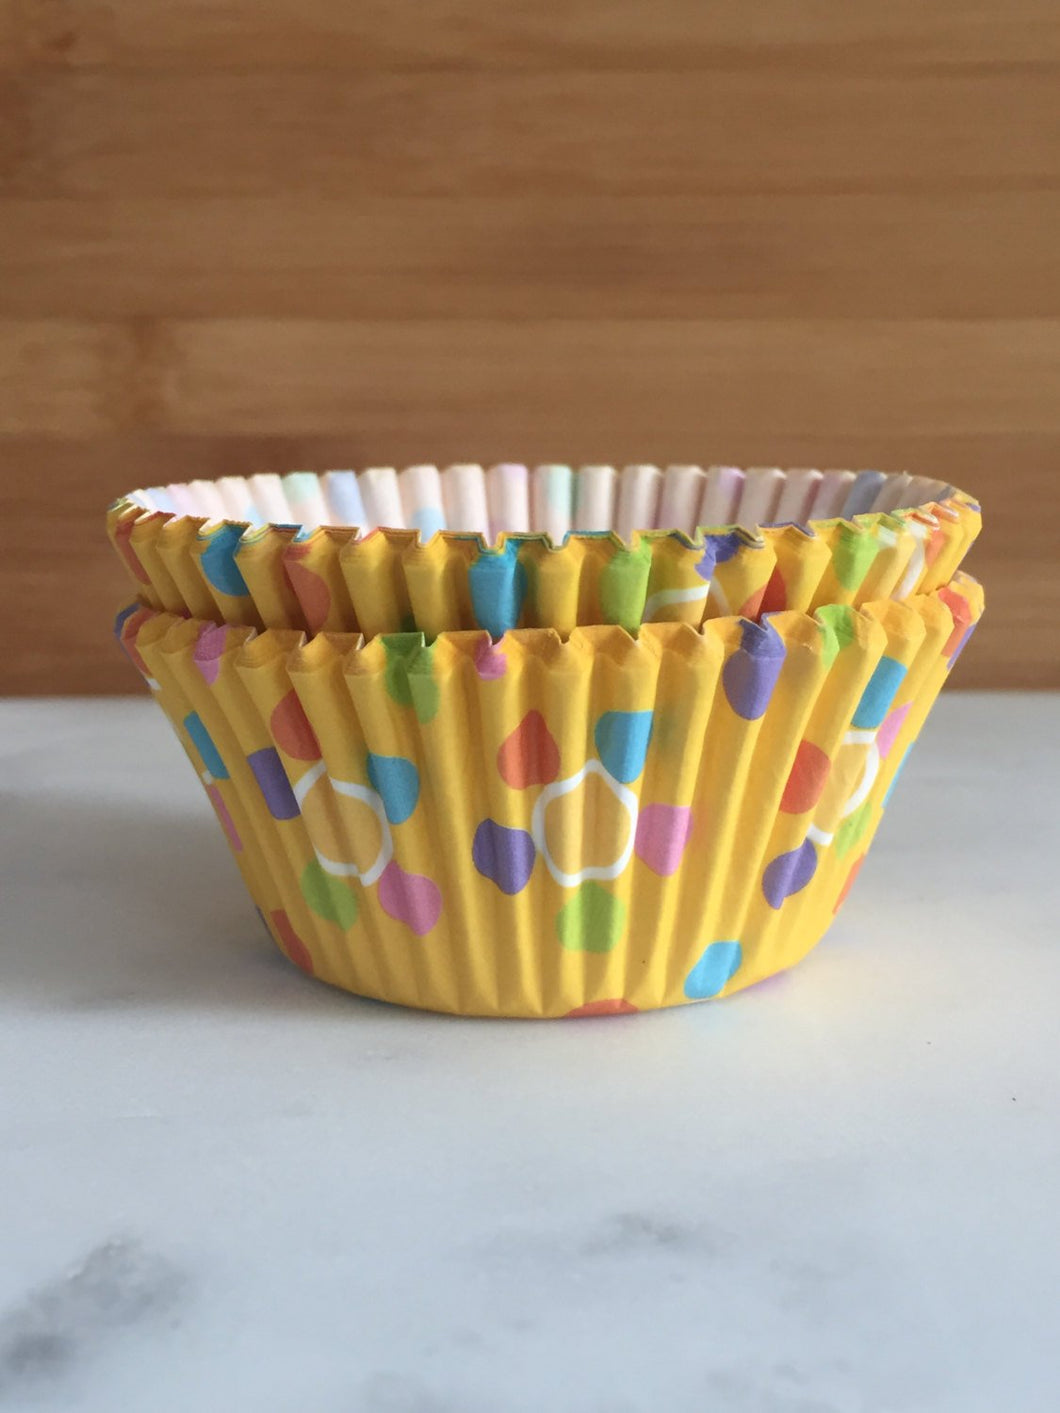 Golden Yellow Polka Dot Cupcake Liners, Standard Sized, Baking Cups (50)